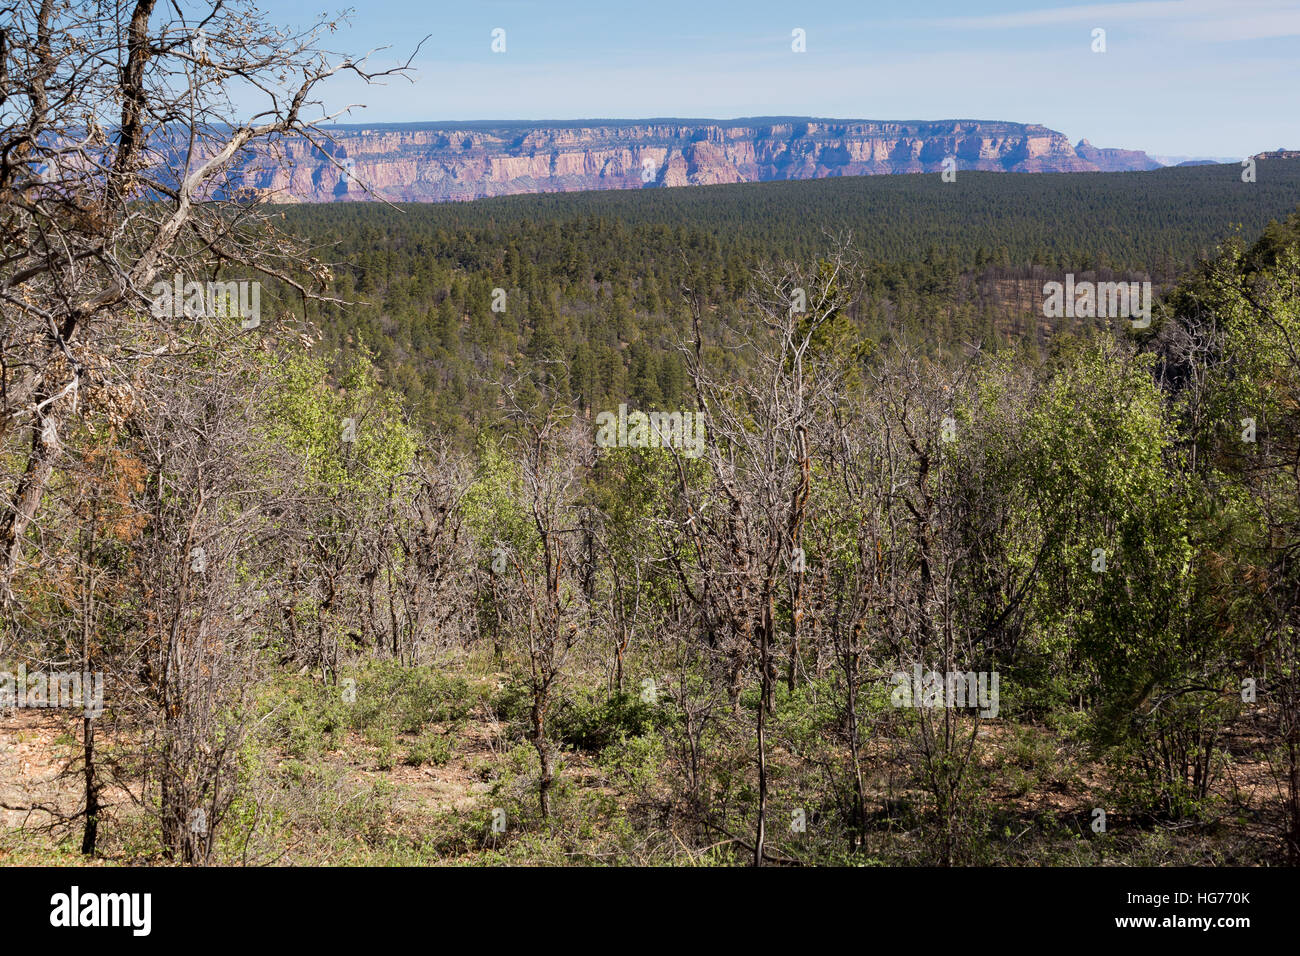 Features of the Grand Canyon peeking out from a viewpoint along the Coconino Rim. Kaibab National Forest, Arizona - Stock Image